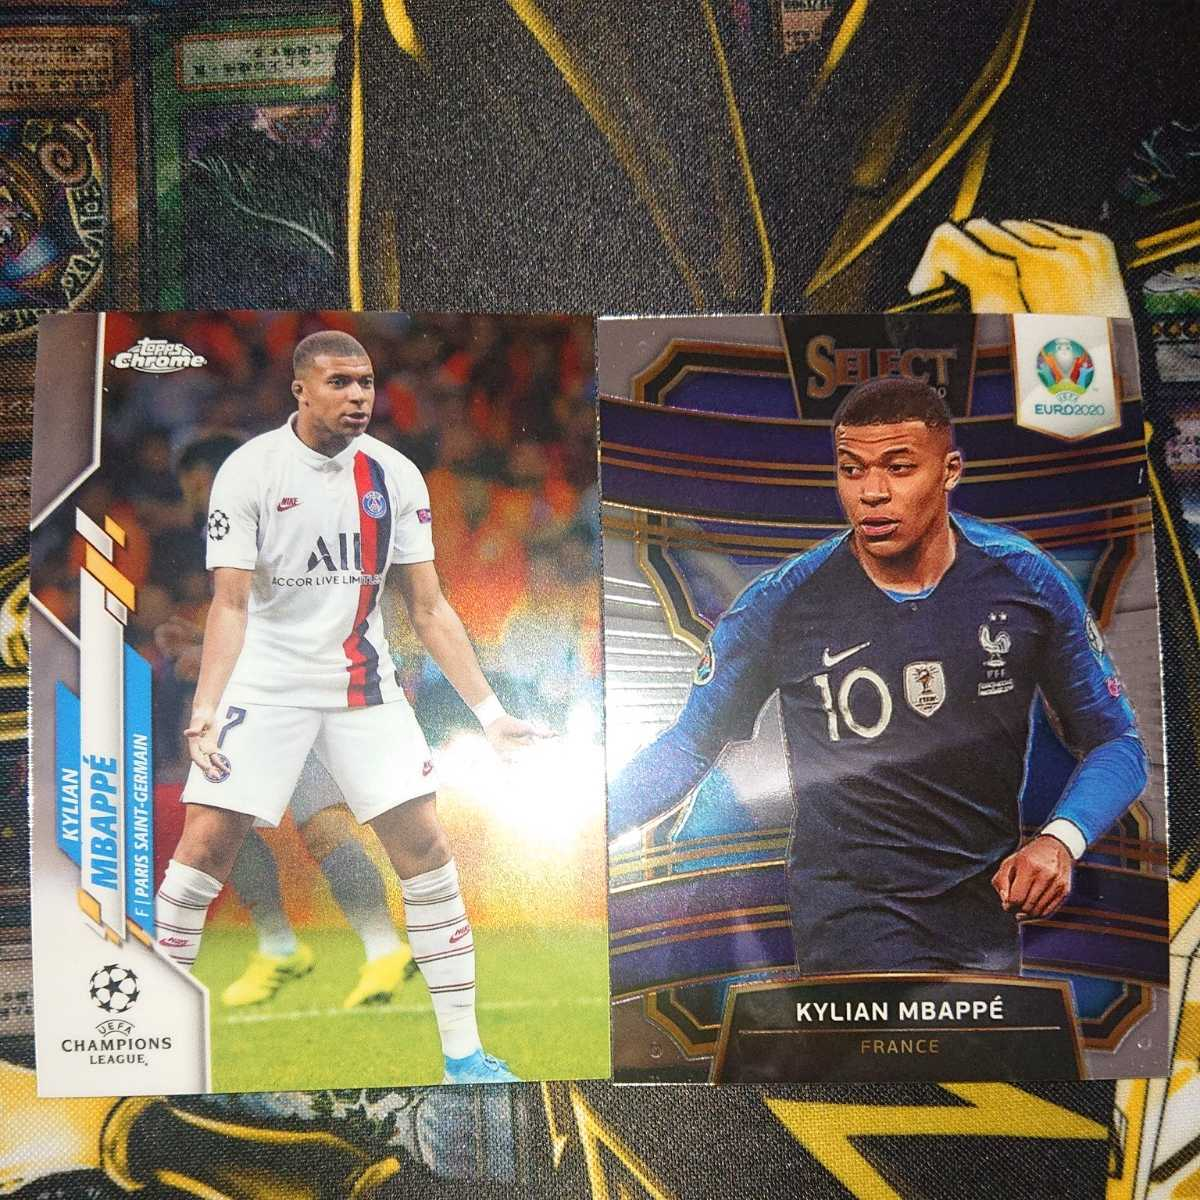 2020 PANINI SELECT EURO Base Terrace KYLIAN MBAPPE ムバッペ2019-20 Topps Chrome UEFA Champions League Soccer Base card 2枚セット_画像1